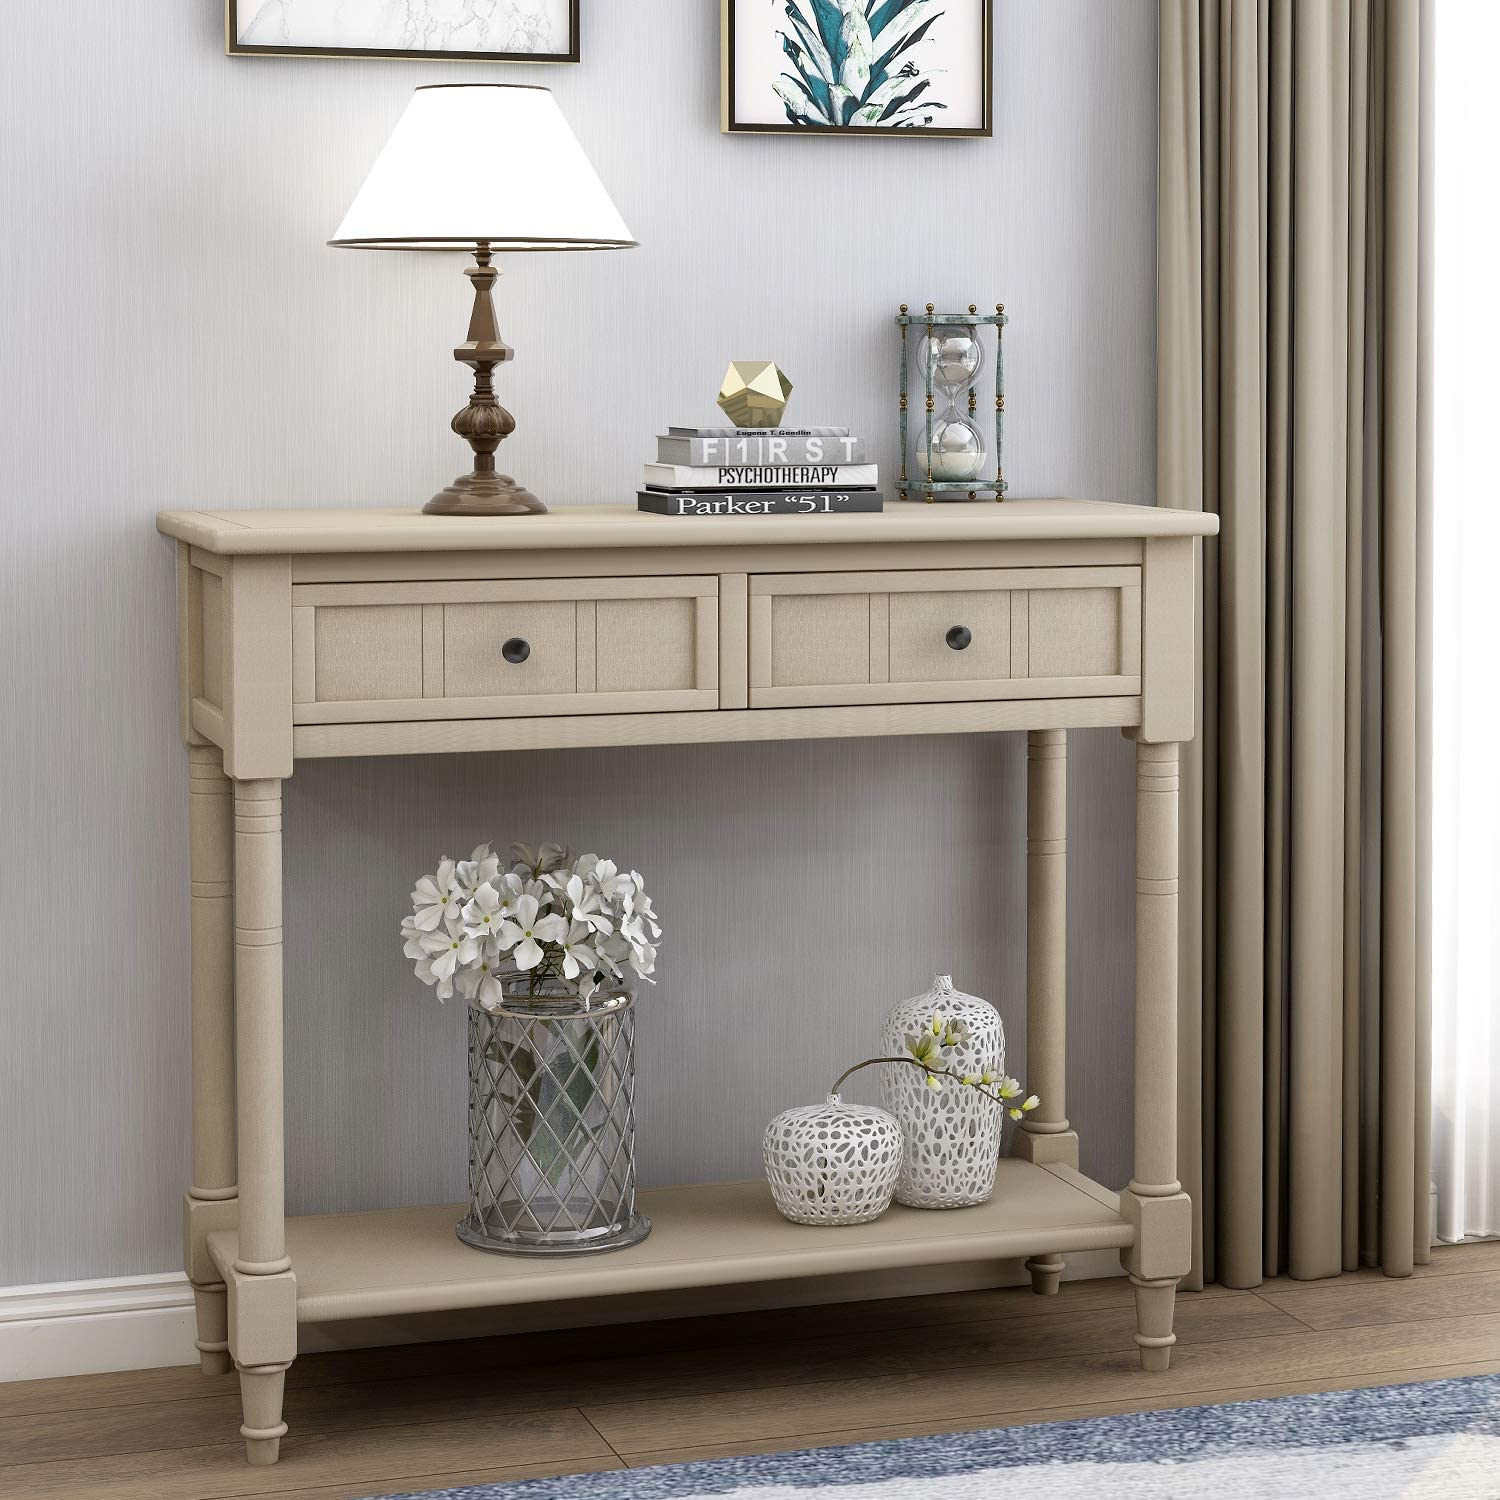 Goujxcy Hall Finish Accent Console Table,Wooden Sofa Table with 2 Drawers and Bottom Shelf for Bedroom Decor (Retro Grey)